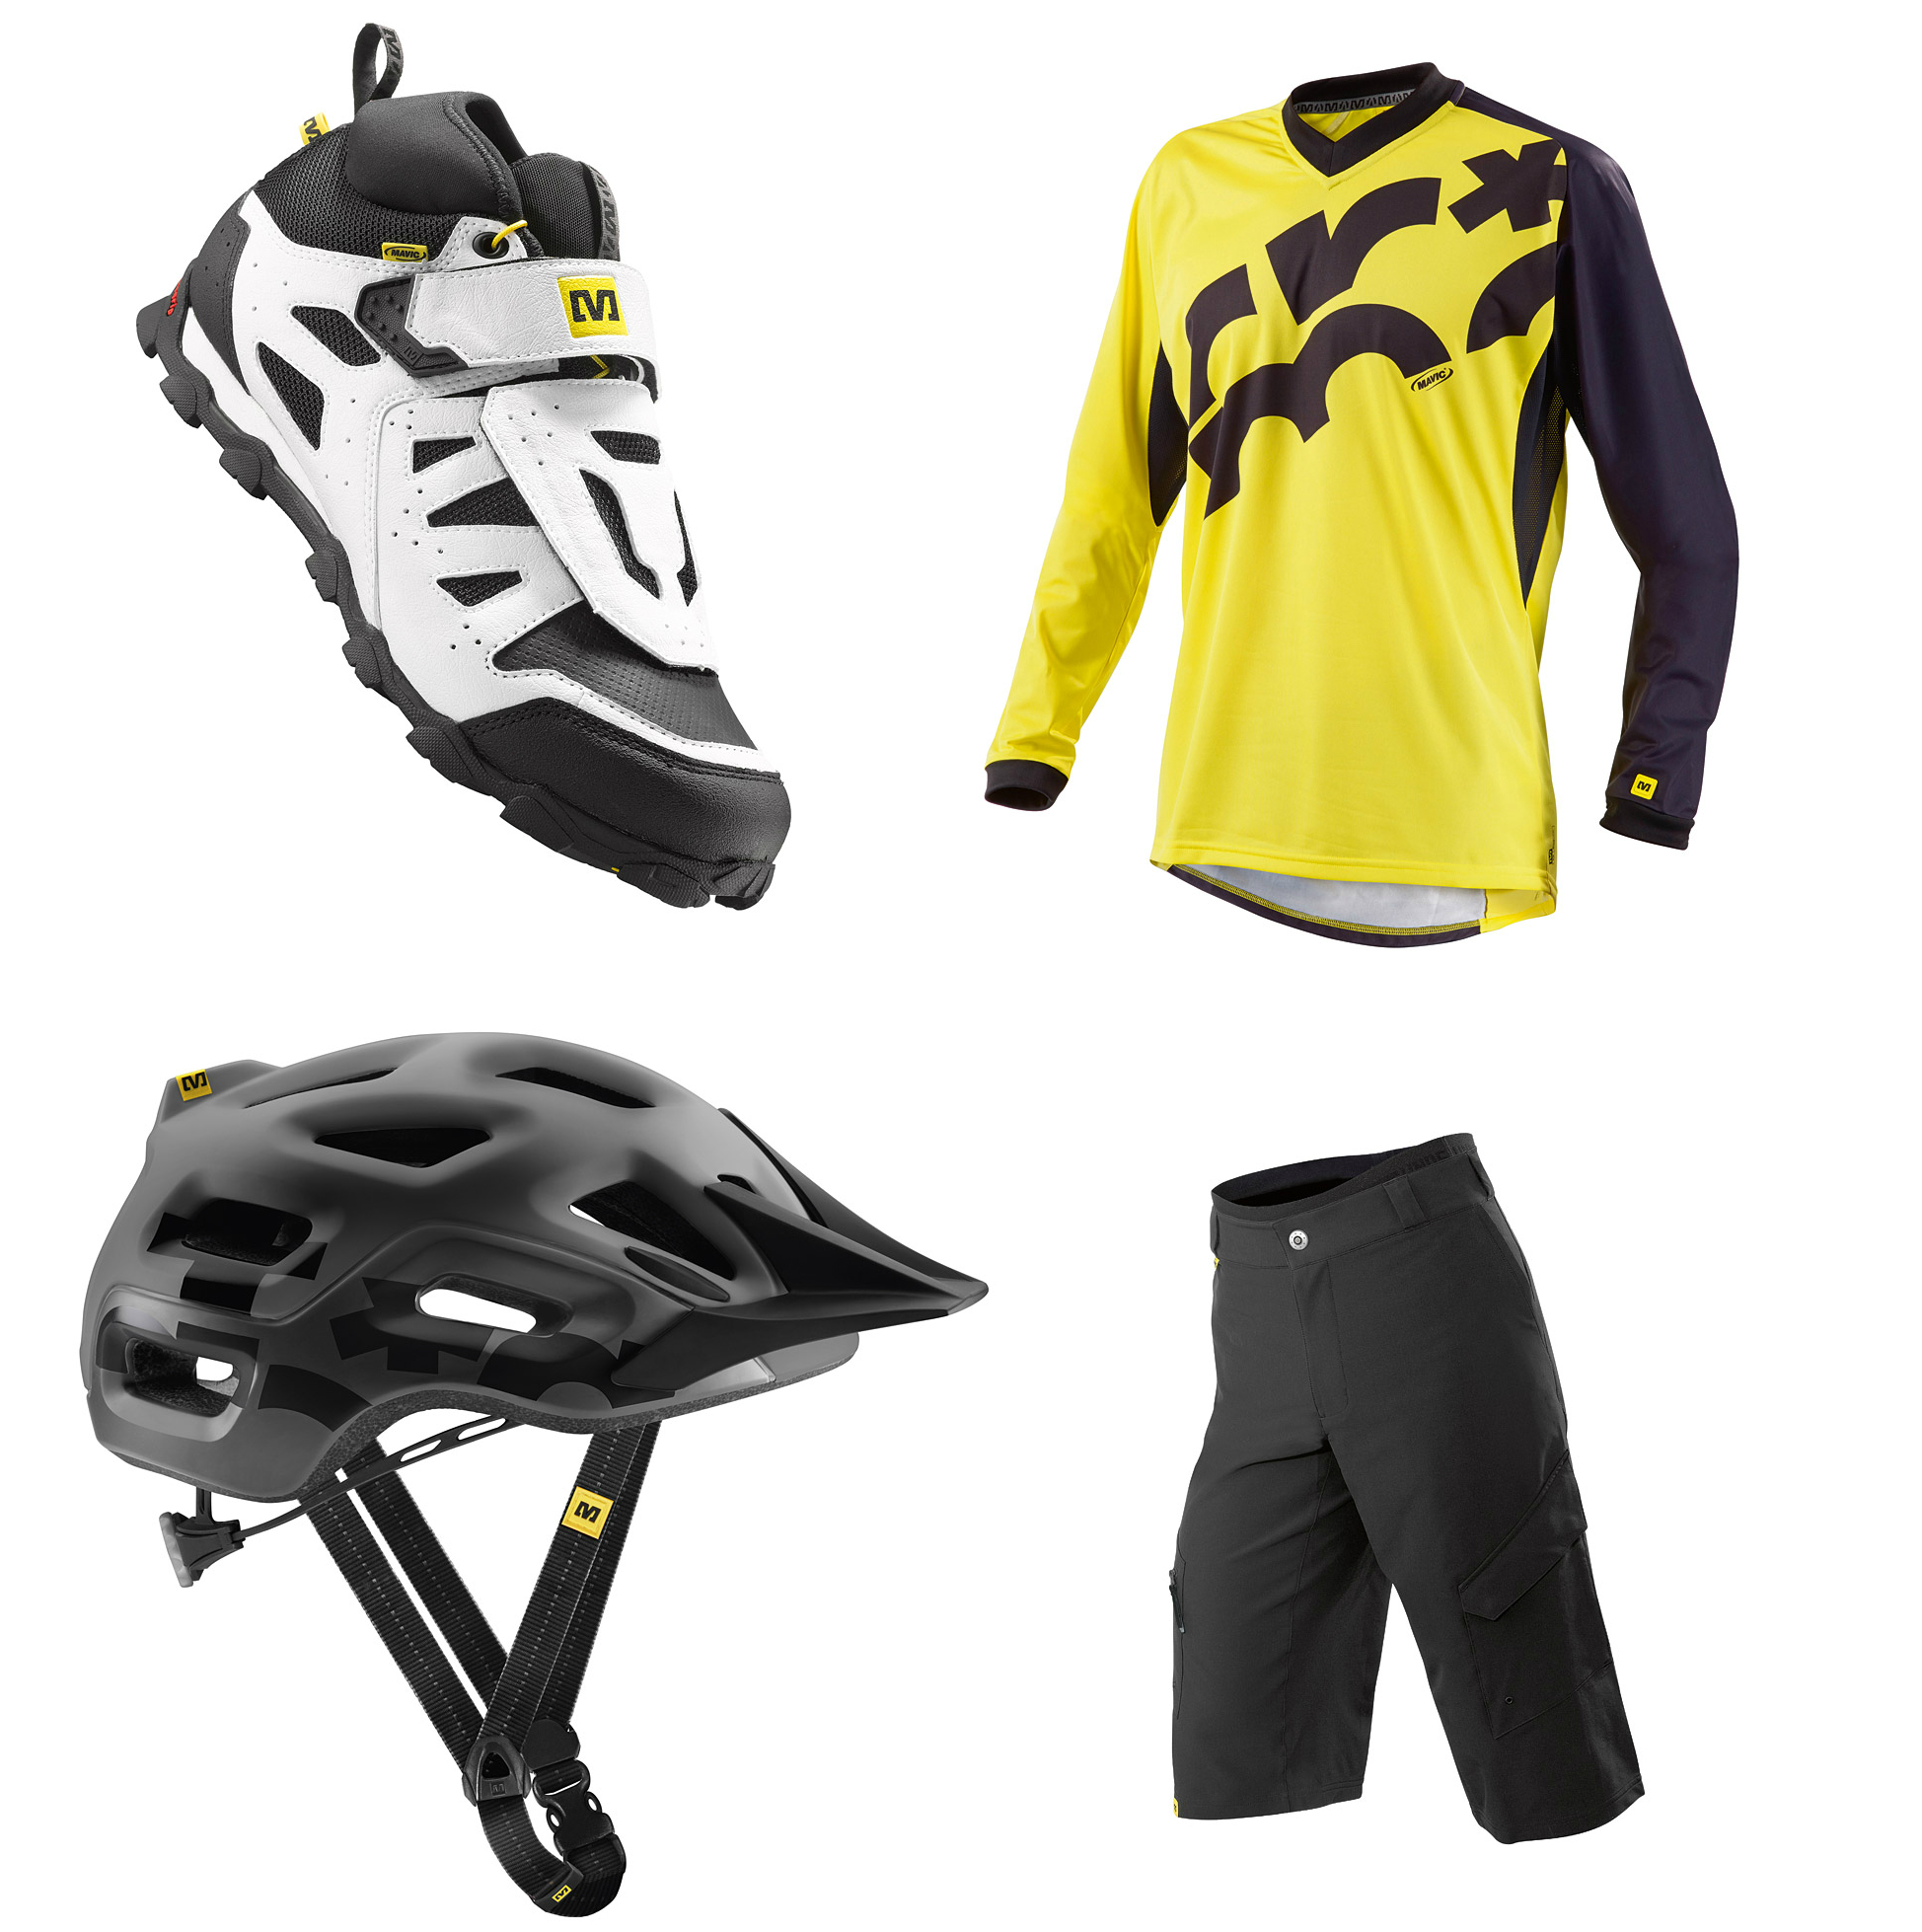 Mavic Alpine XL shoe Crossmax jersey Crossmax shorts Notch helmet